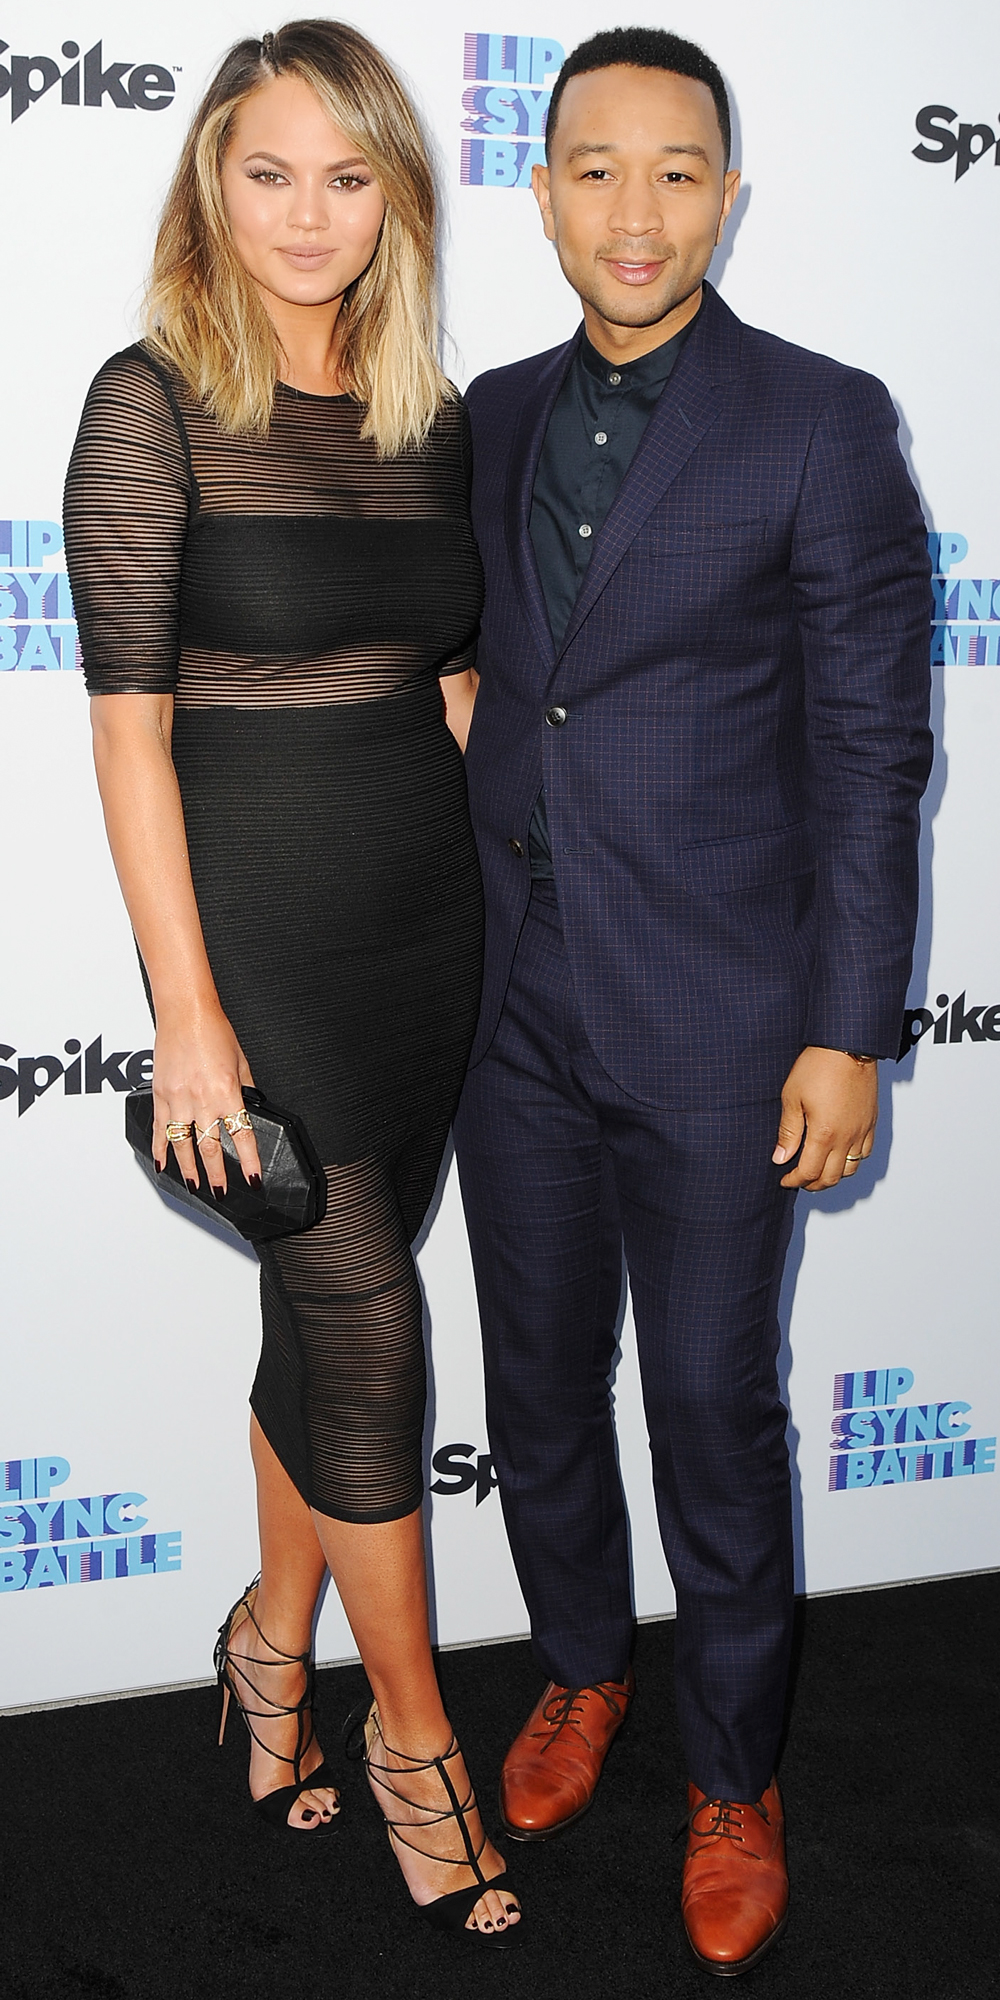 Model Chrissy Teigen and recording artist John Legend arrive at the FYC Event - Spike's 'Lip Sync Battle' at Saban Media Center on June 14, 2016 in North Hollywood, California.